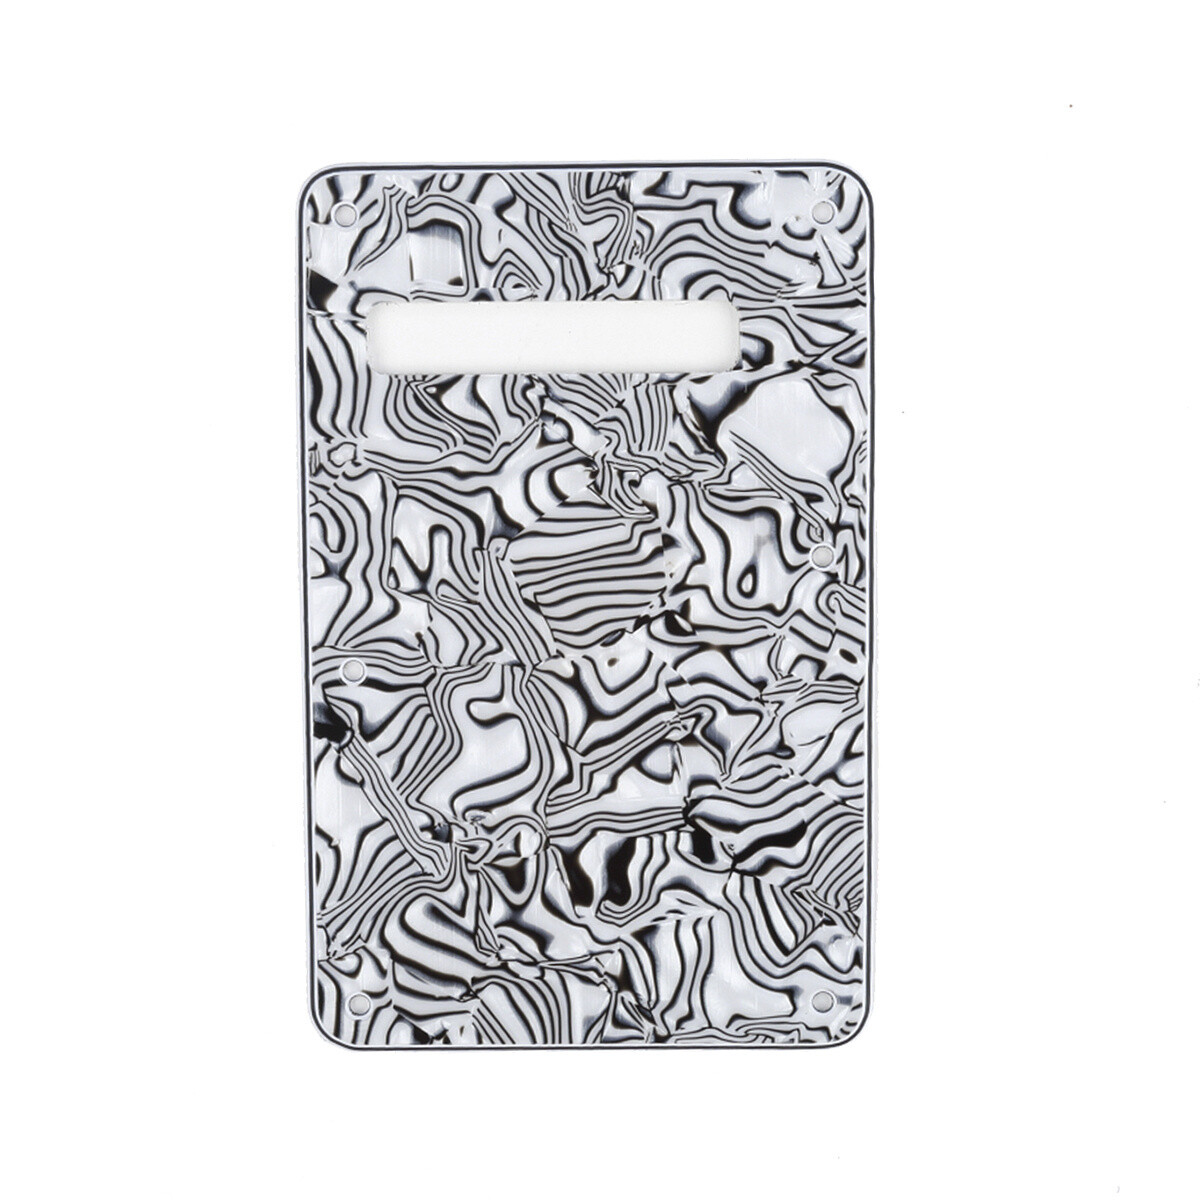 Brio Shell Black Modern Style Back Plate Tremolo Cover 4 ply - US/Mexican Fender®Strat® Fit